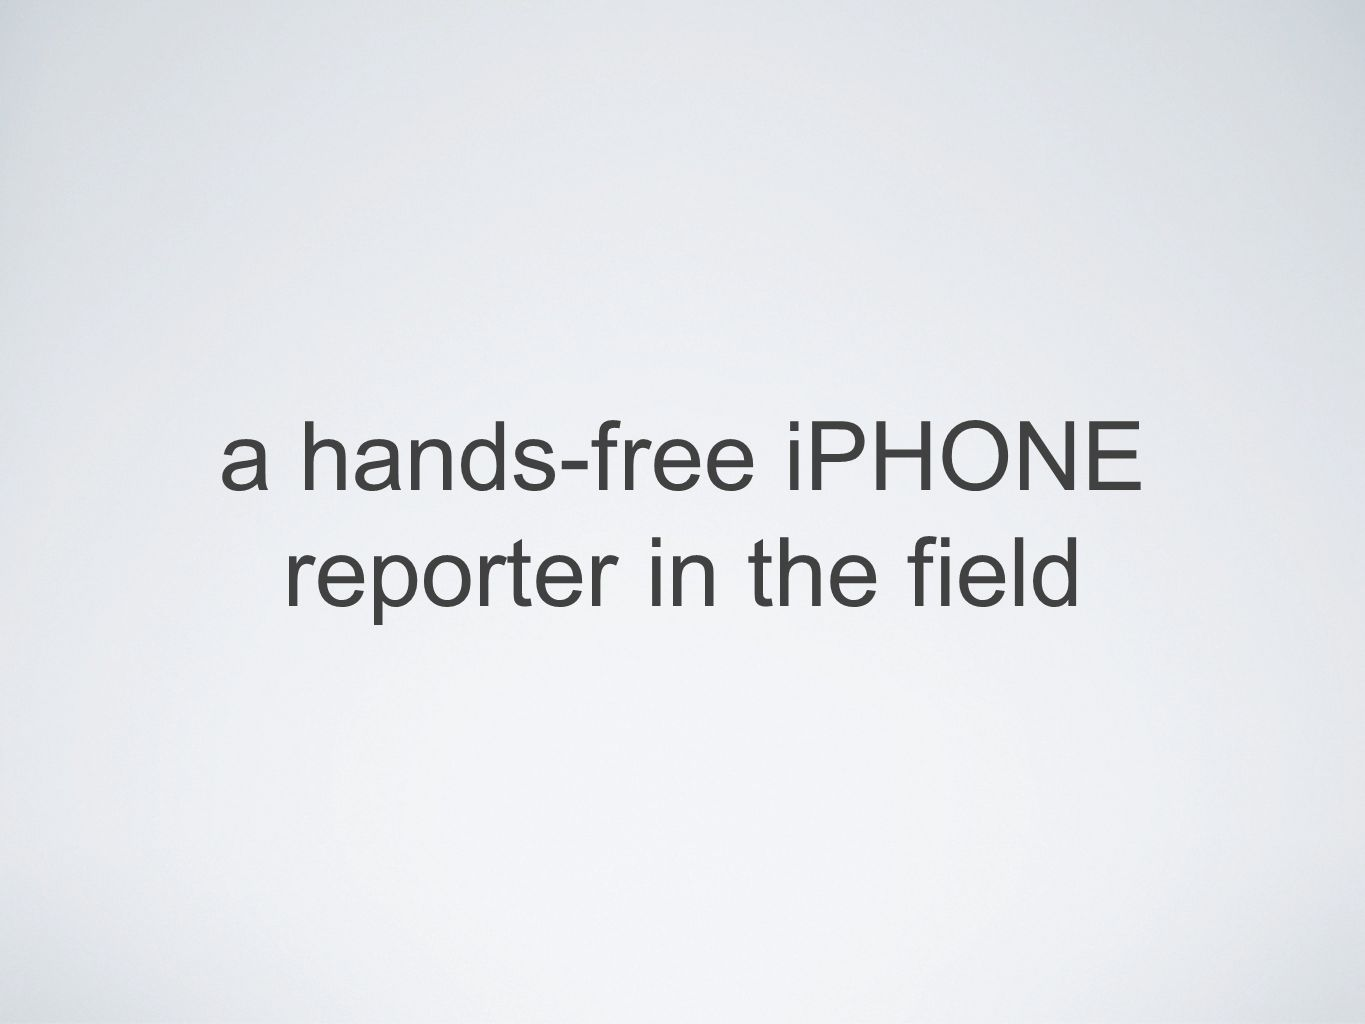 a hands-free iPHONE reporter in the field